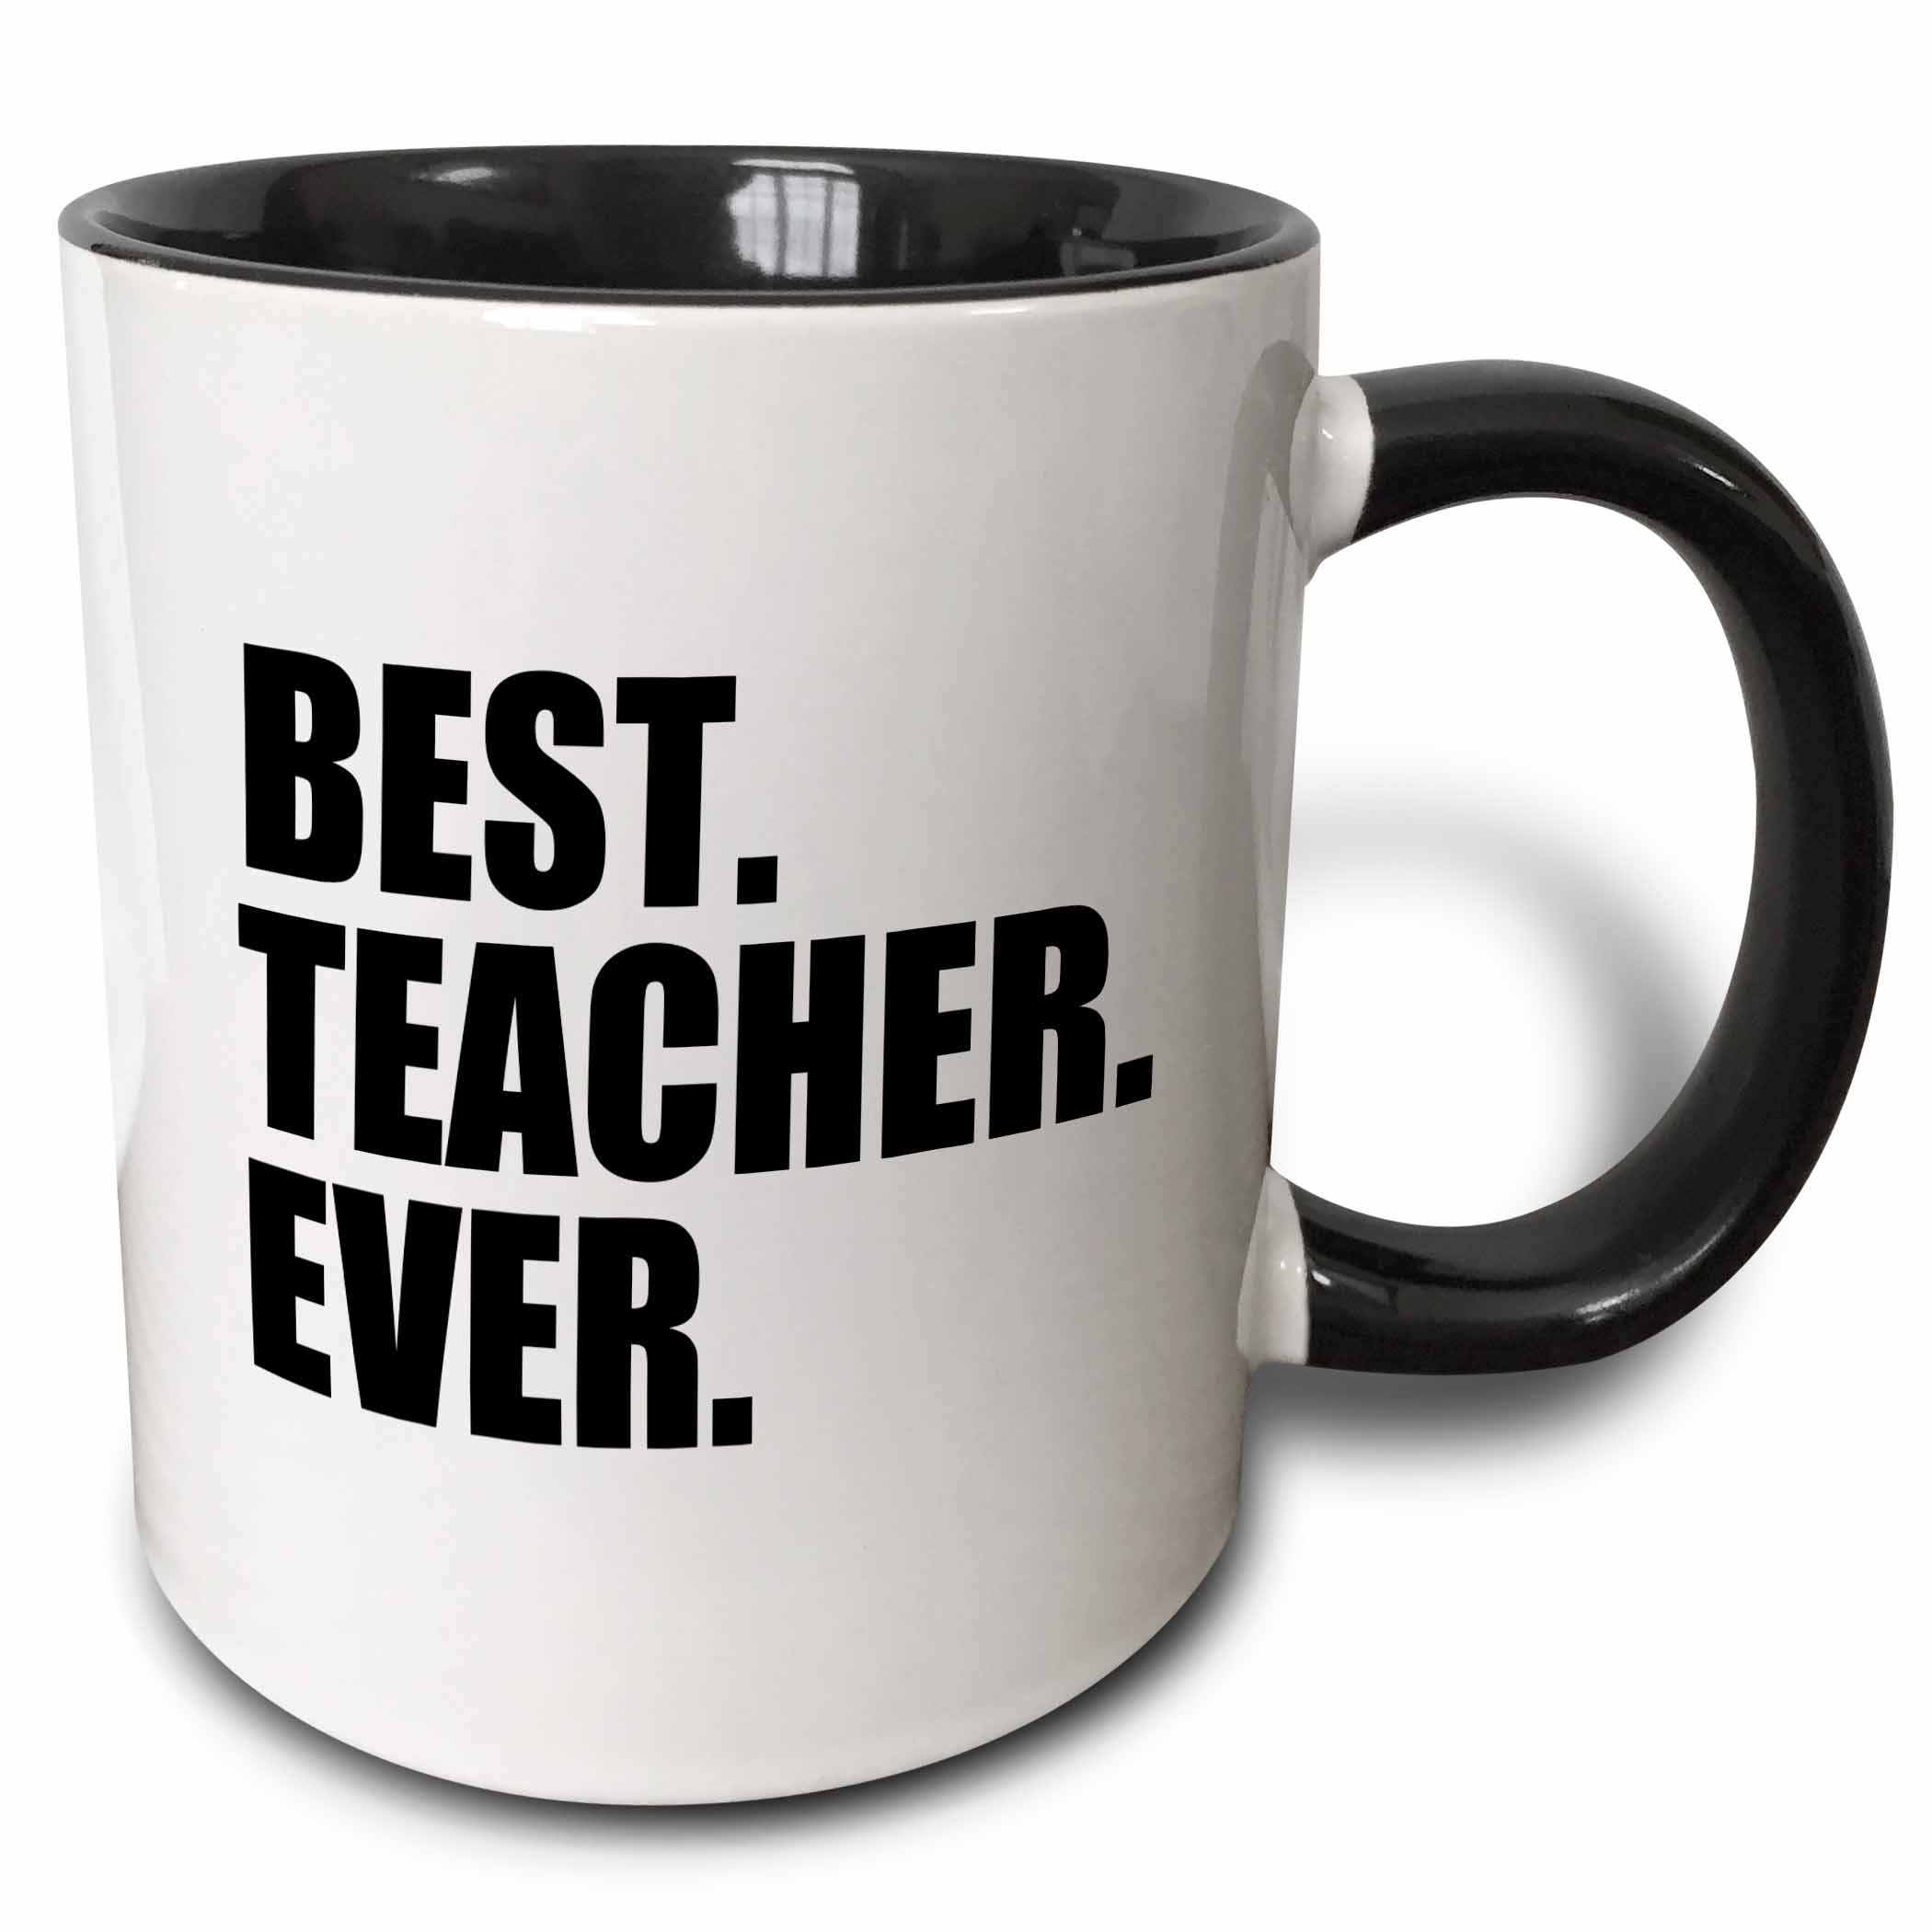 3dRose Best Teacher Ever - School Teacher and Educator gifts - good way to say thank you for great teaching, Two Tone Black Mug, 11oz